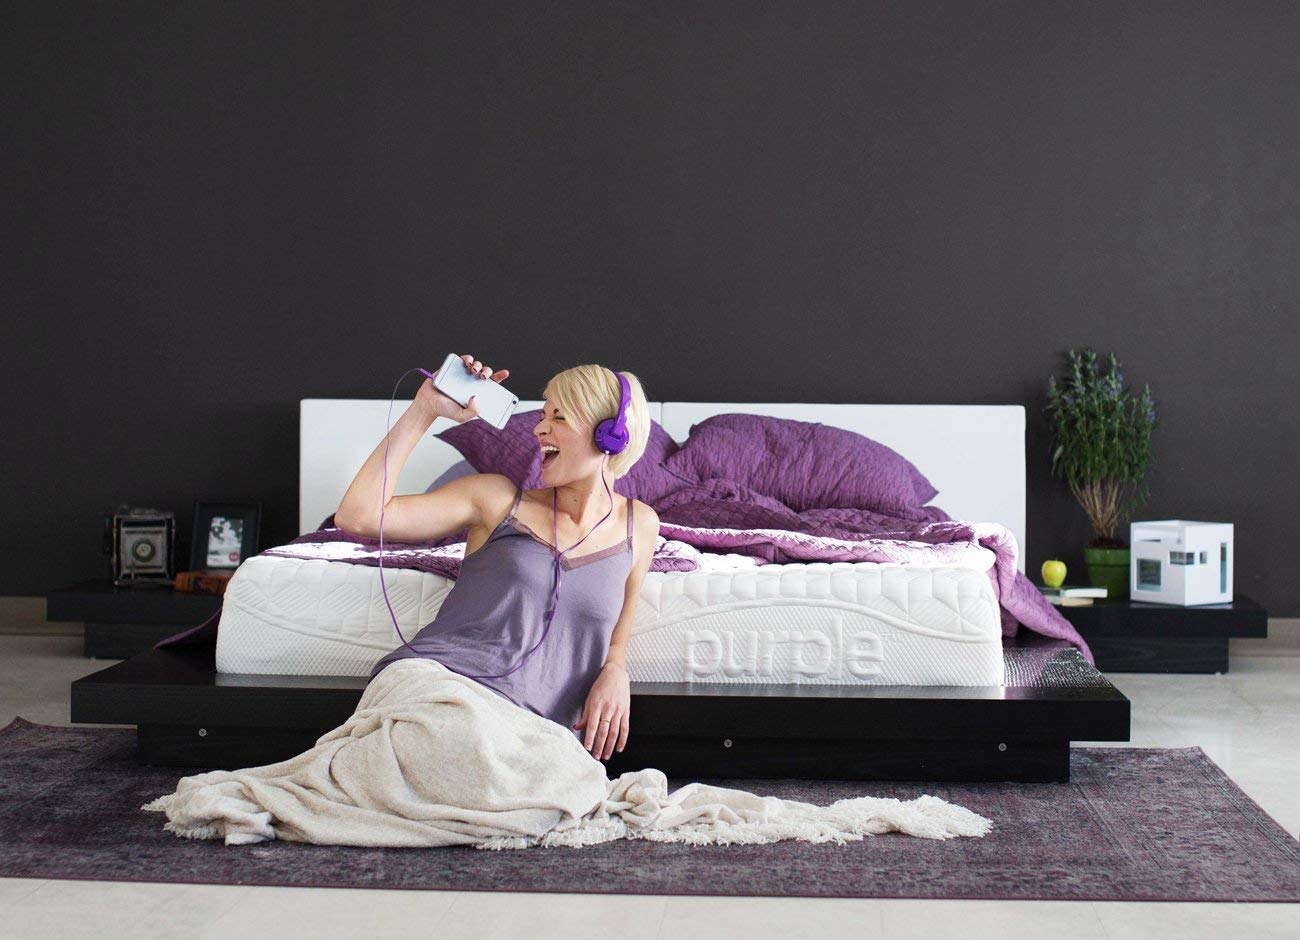 Woman enjoying her Purple Mattress